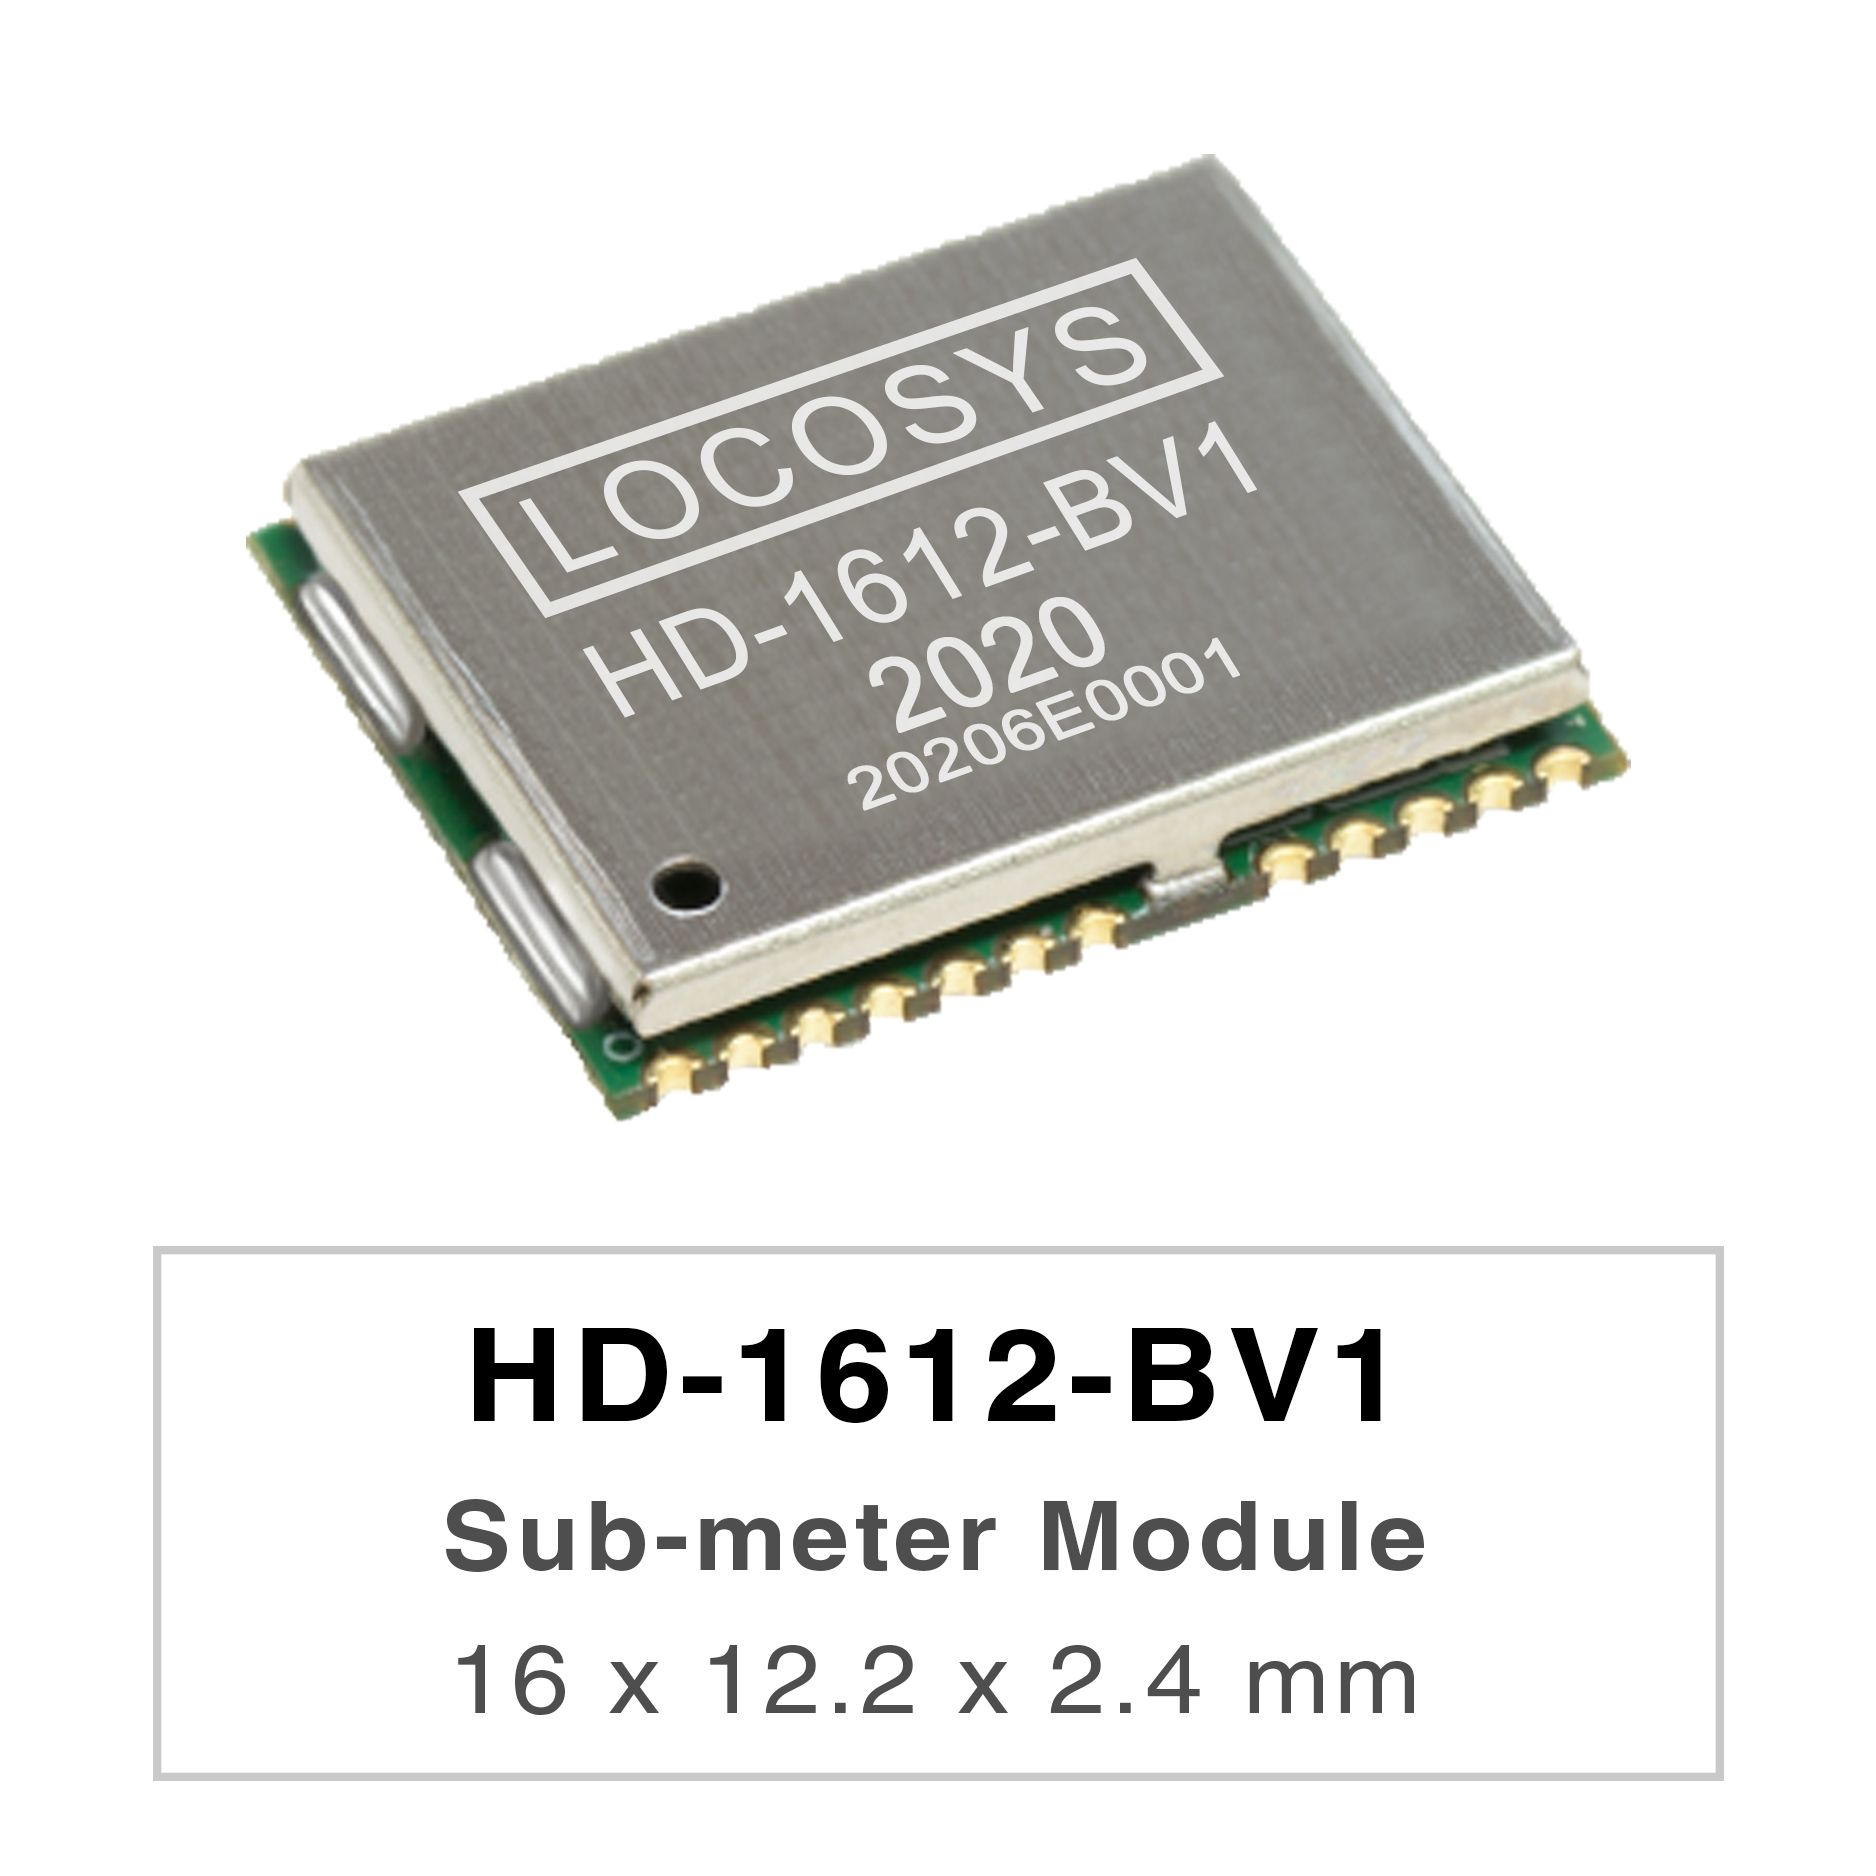 LOCOSYS HD-1612-BV1 is a high-performance GNSS positioning module that is capable of tracking<br />